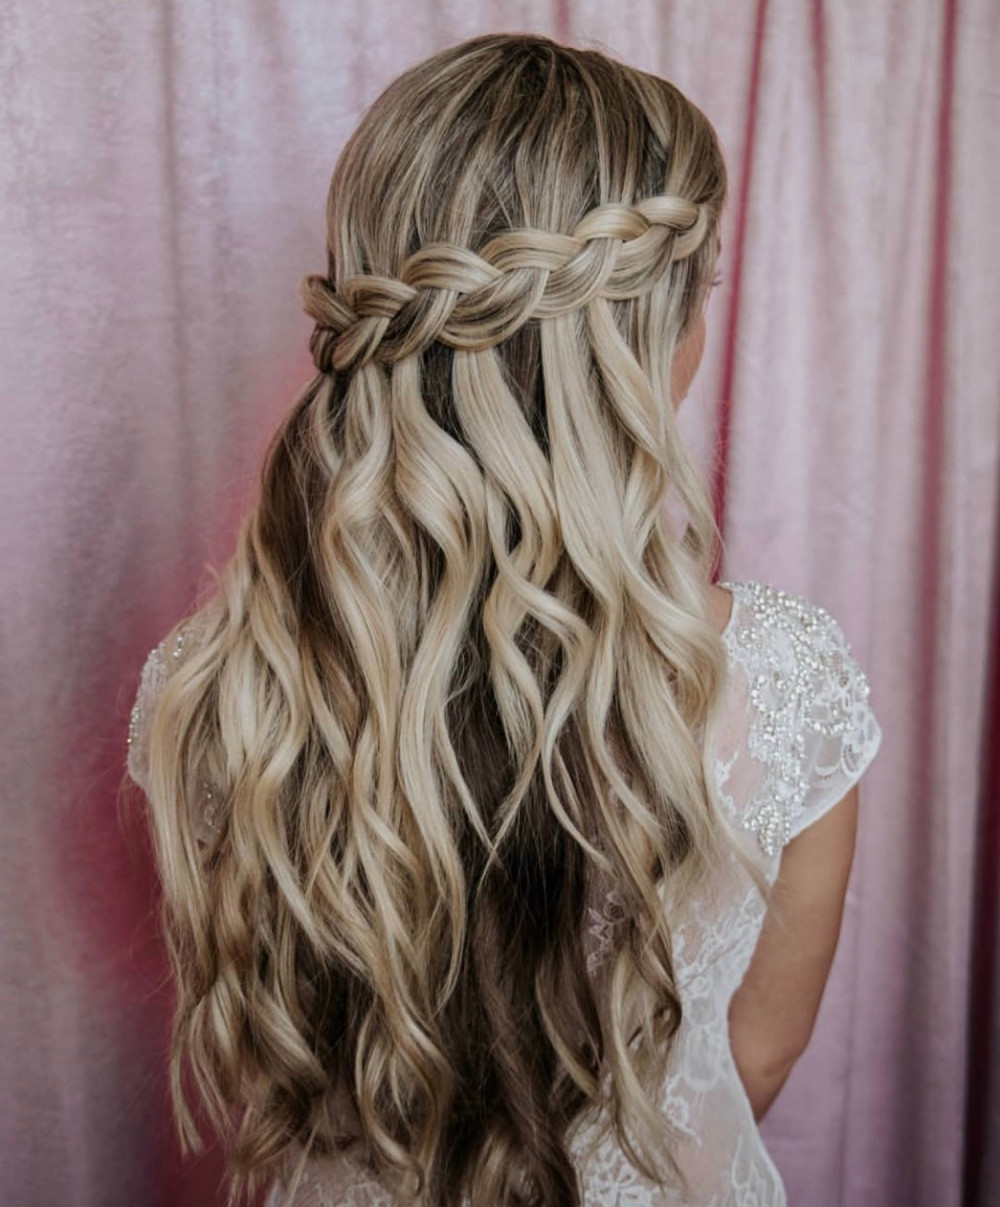 Beautiful bridal half up hairstyle with waterfall braid on highlighted hair